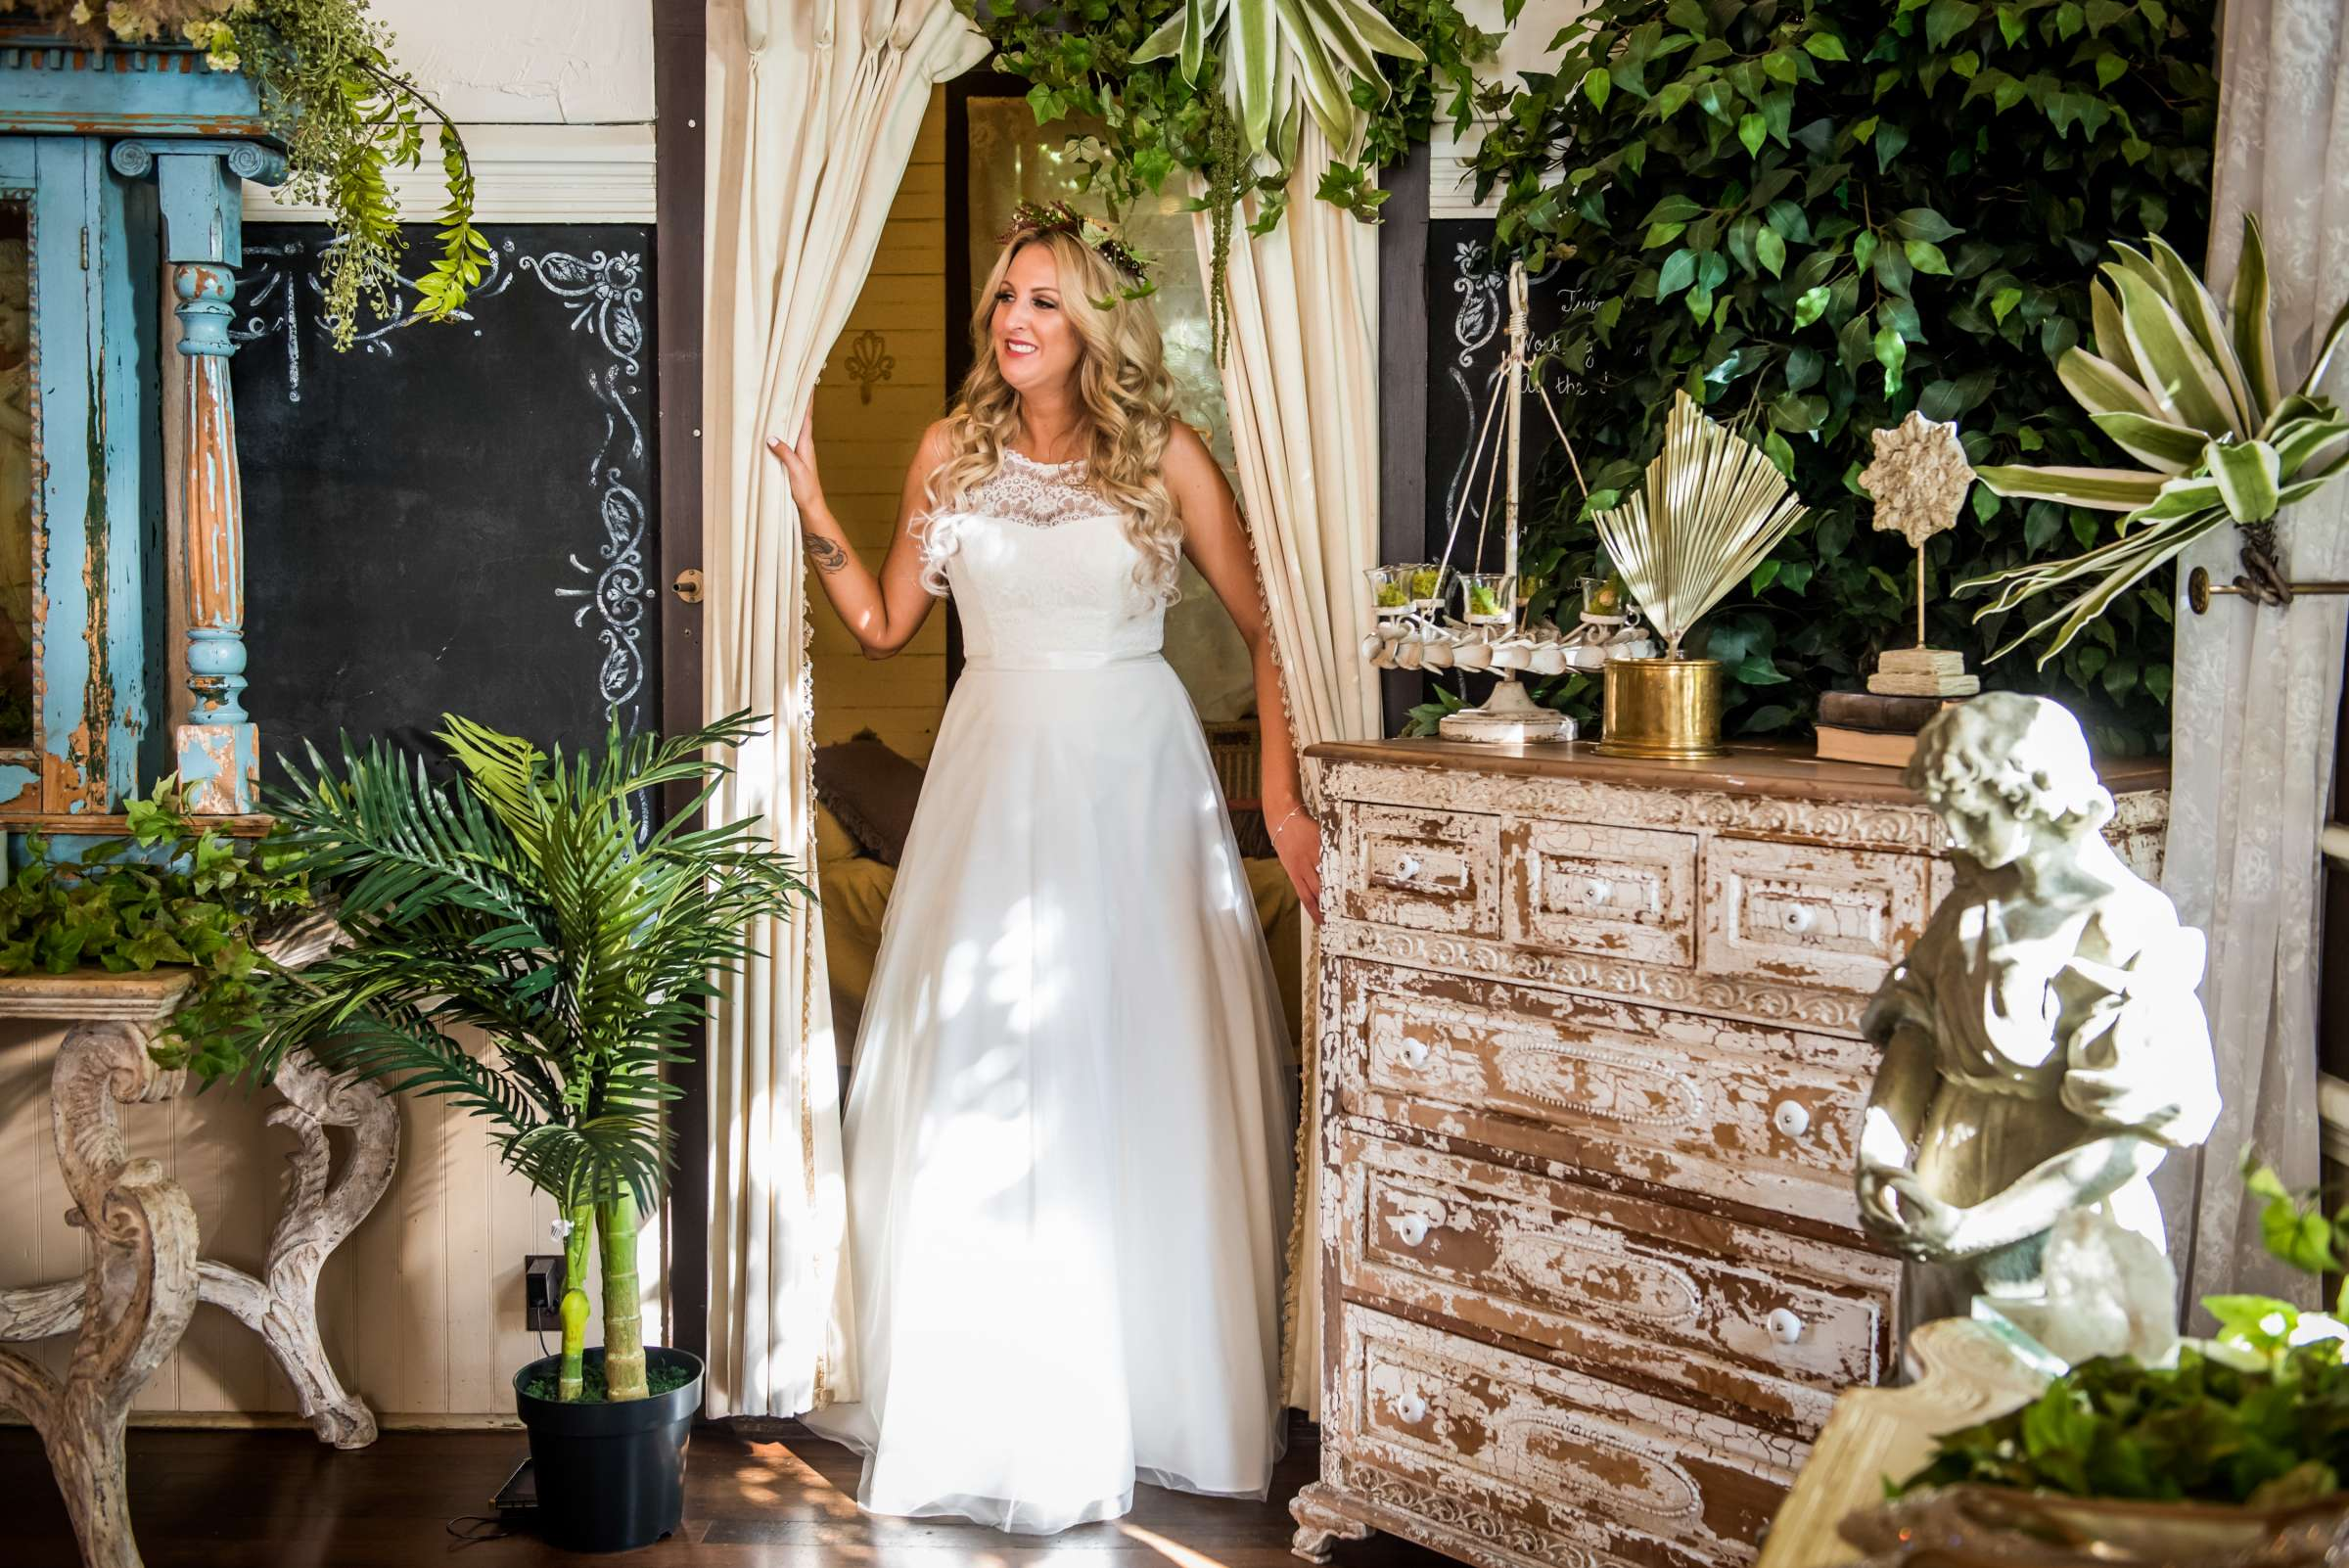 Twin Oaks House & Gardens Wedding Estate Wedding, Brittany and Sean Wedding Photo #42 by True Photography